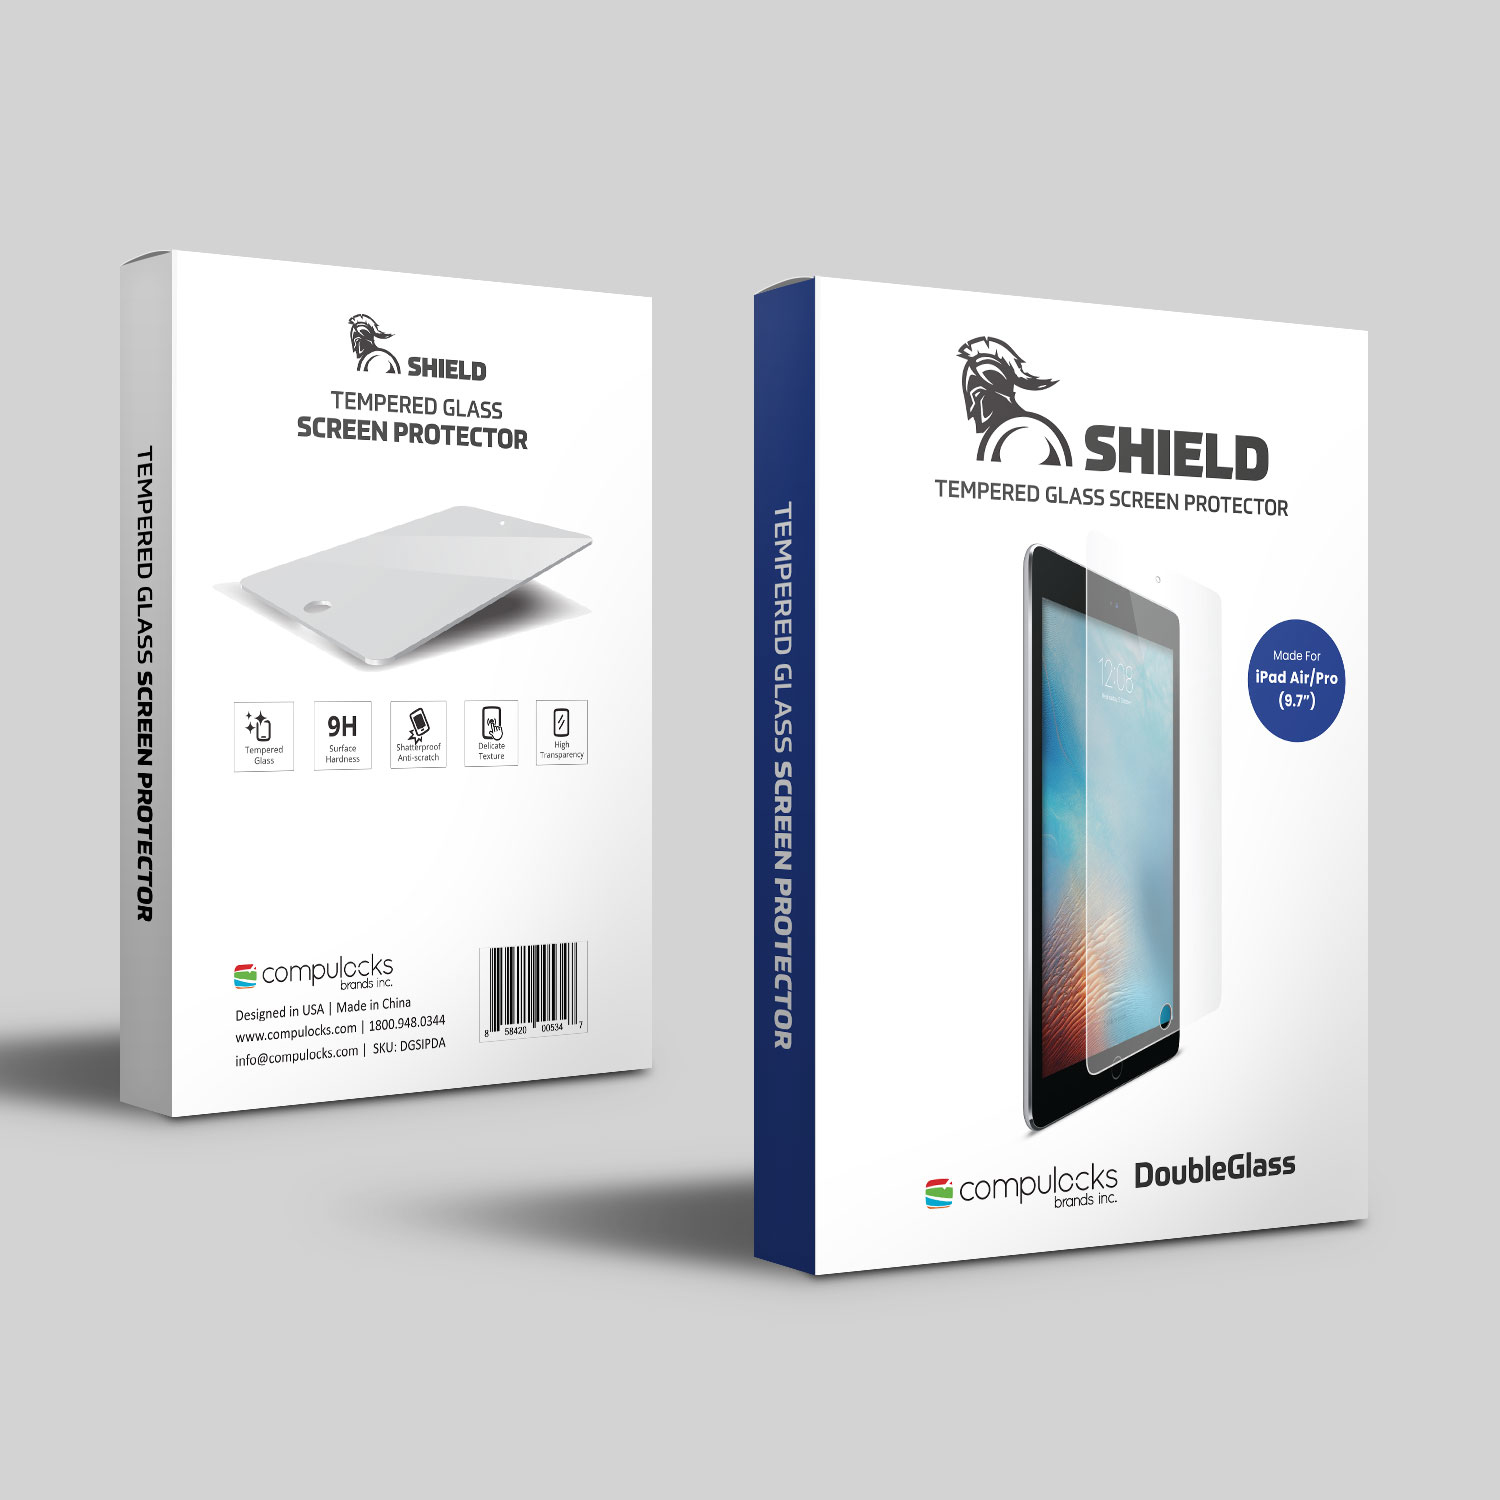 Compulocks                       Armored Tempered Glass Shield       Ipad Air / Air 2                    Dgsipda